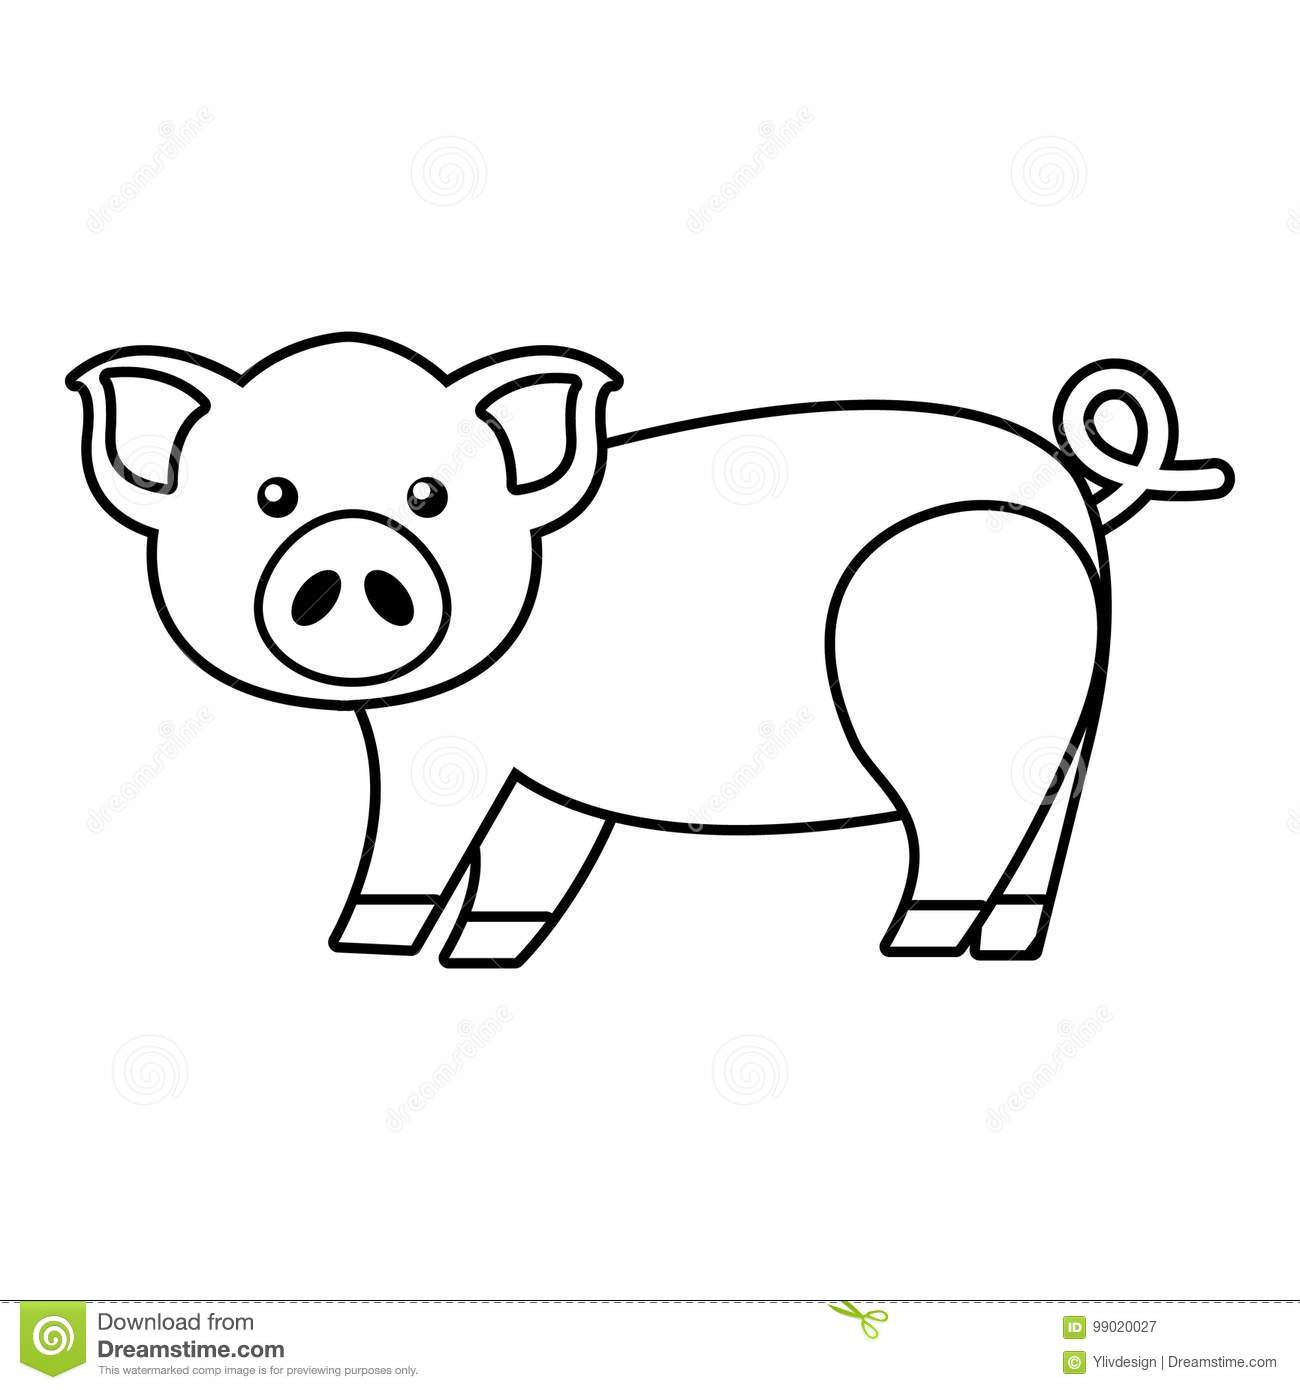 Pig Outline Stock Illustrations 2 644 Pig Outline Stock